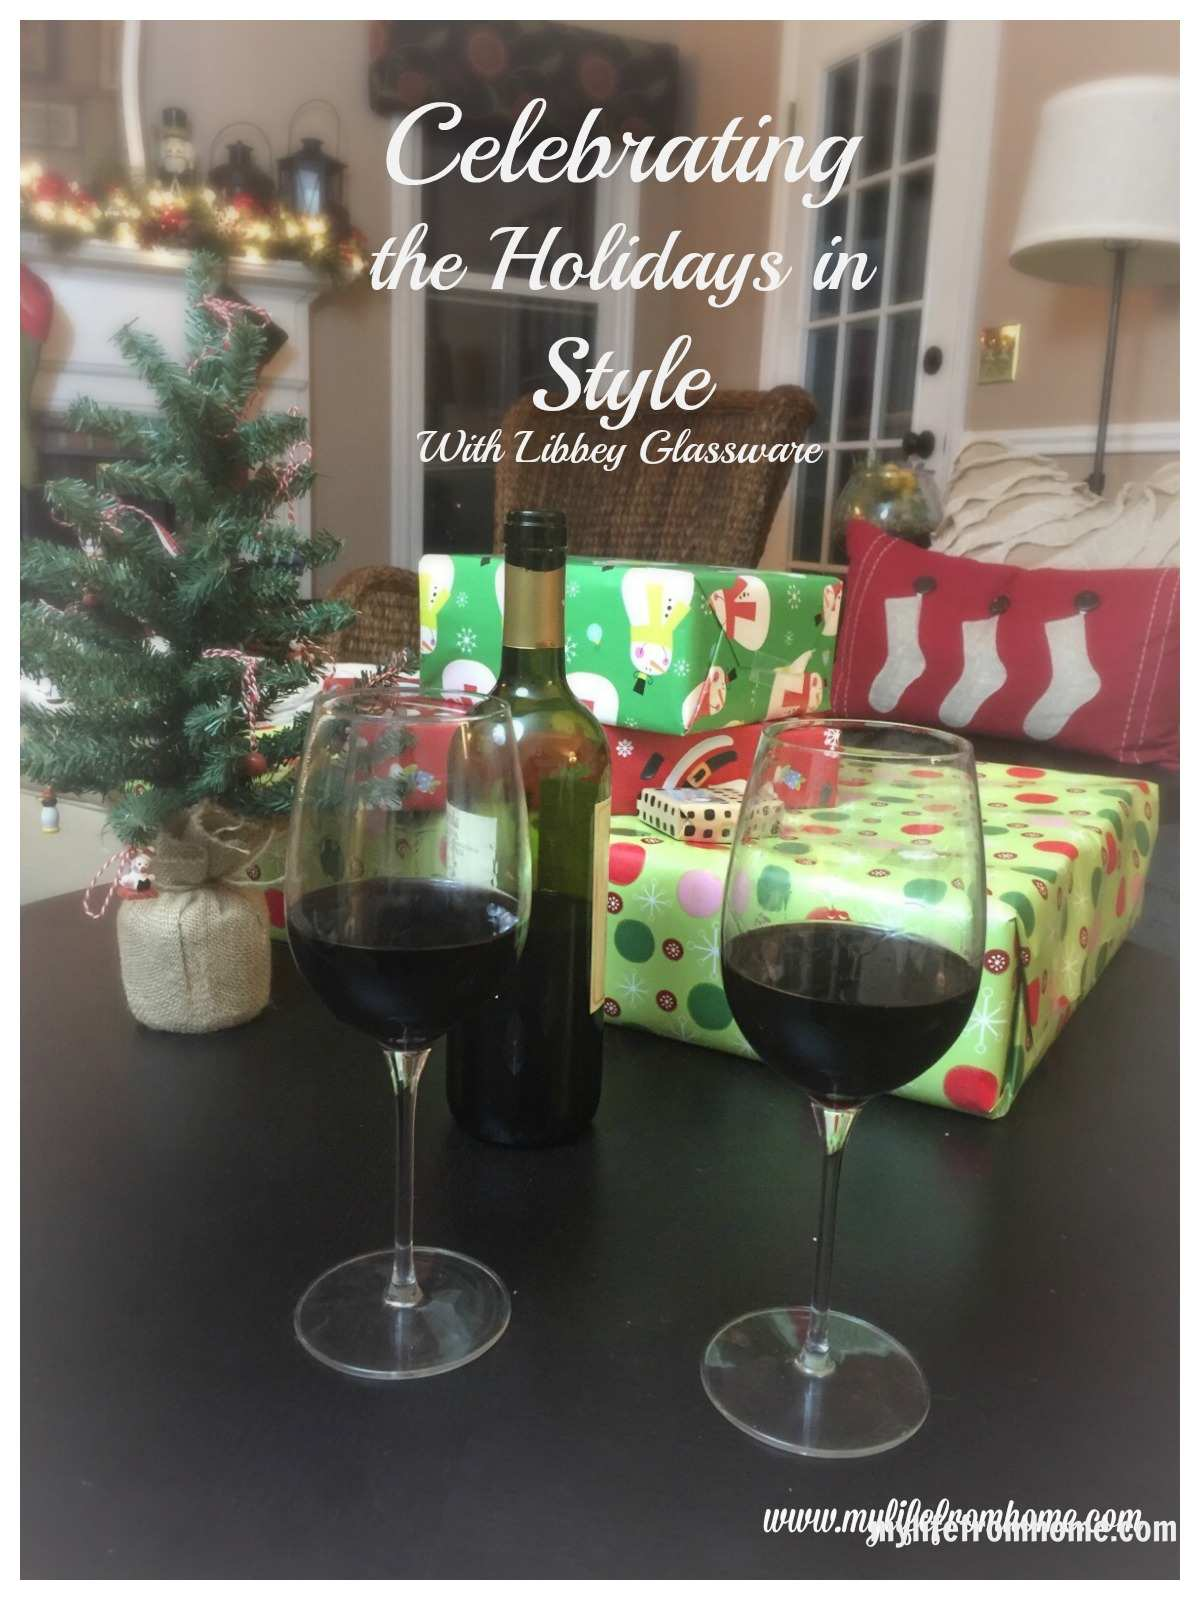 Celebrating the Holidays in Style with Libbey Glassware by www.mylifefromhome.com